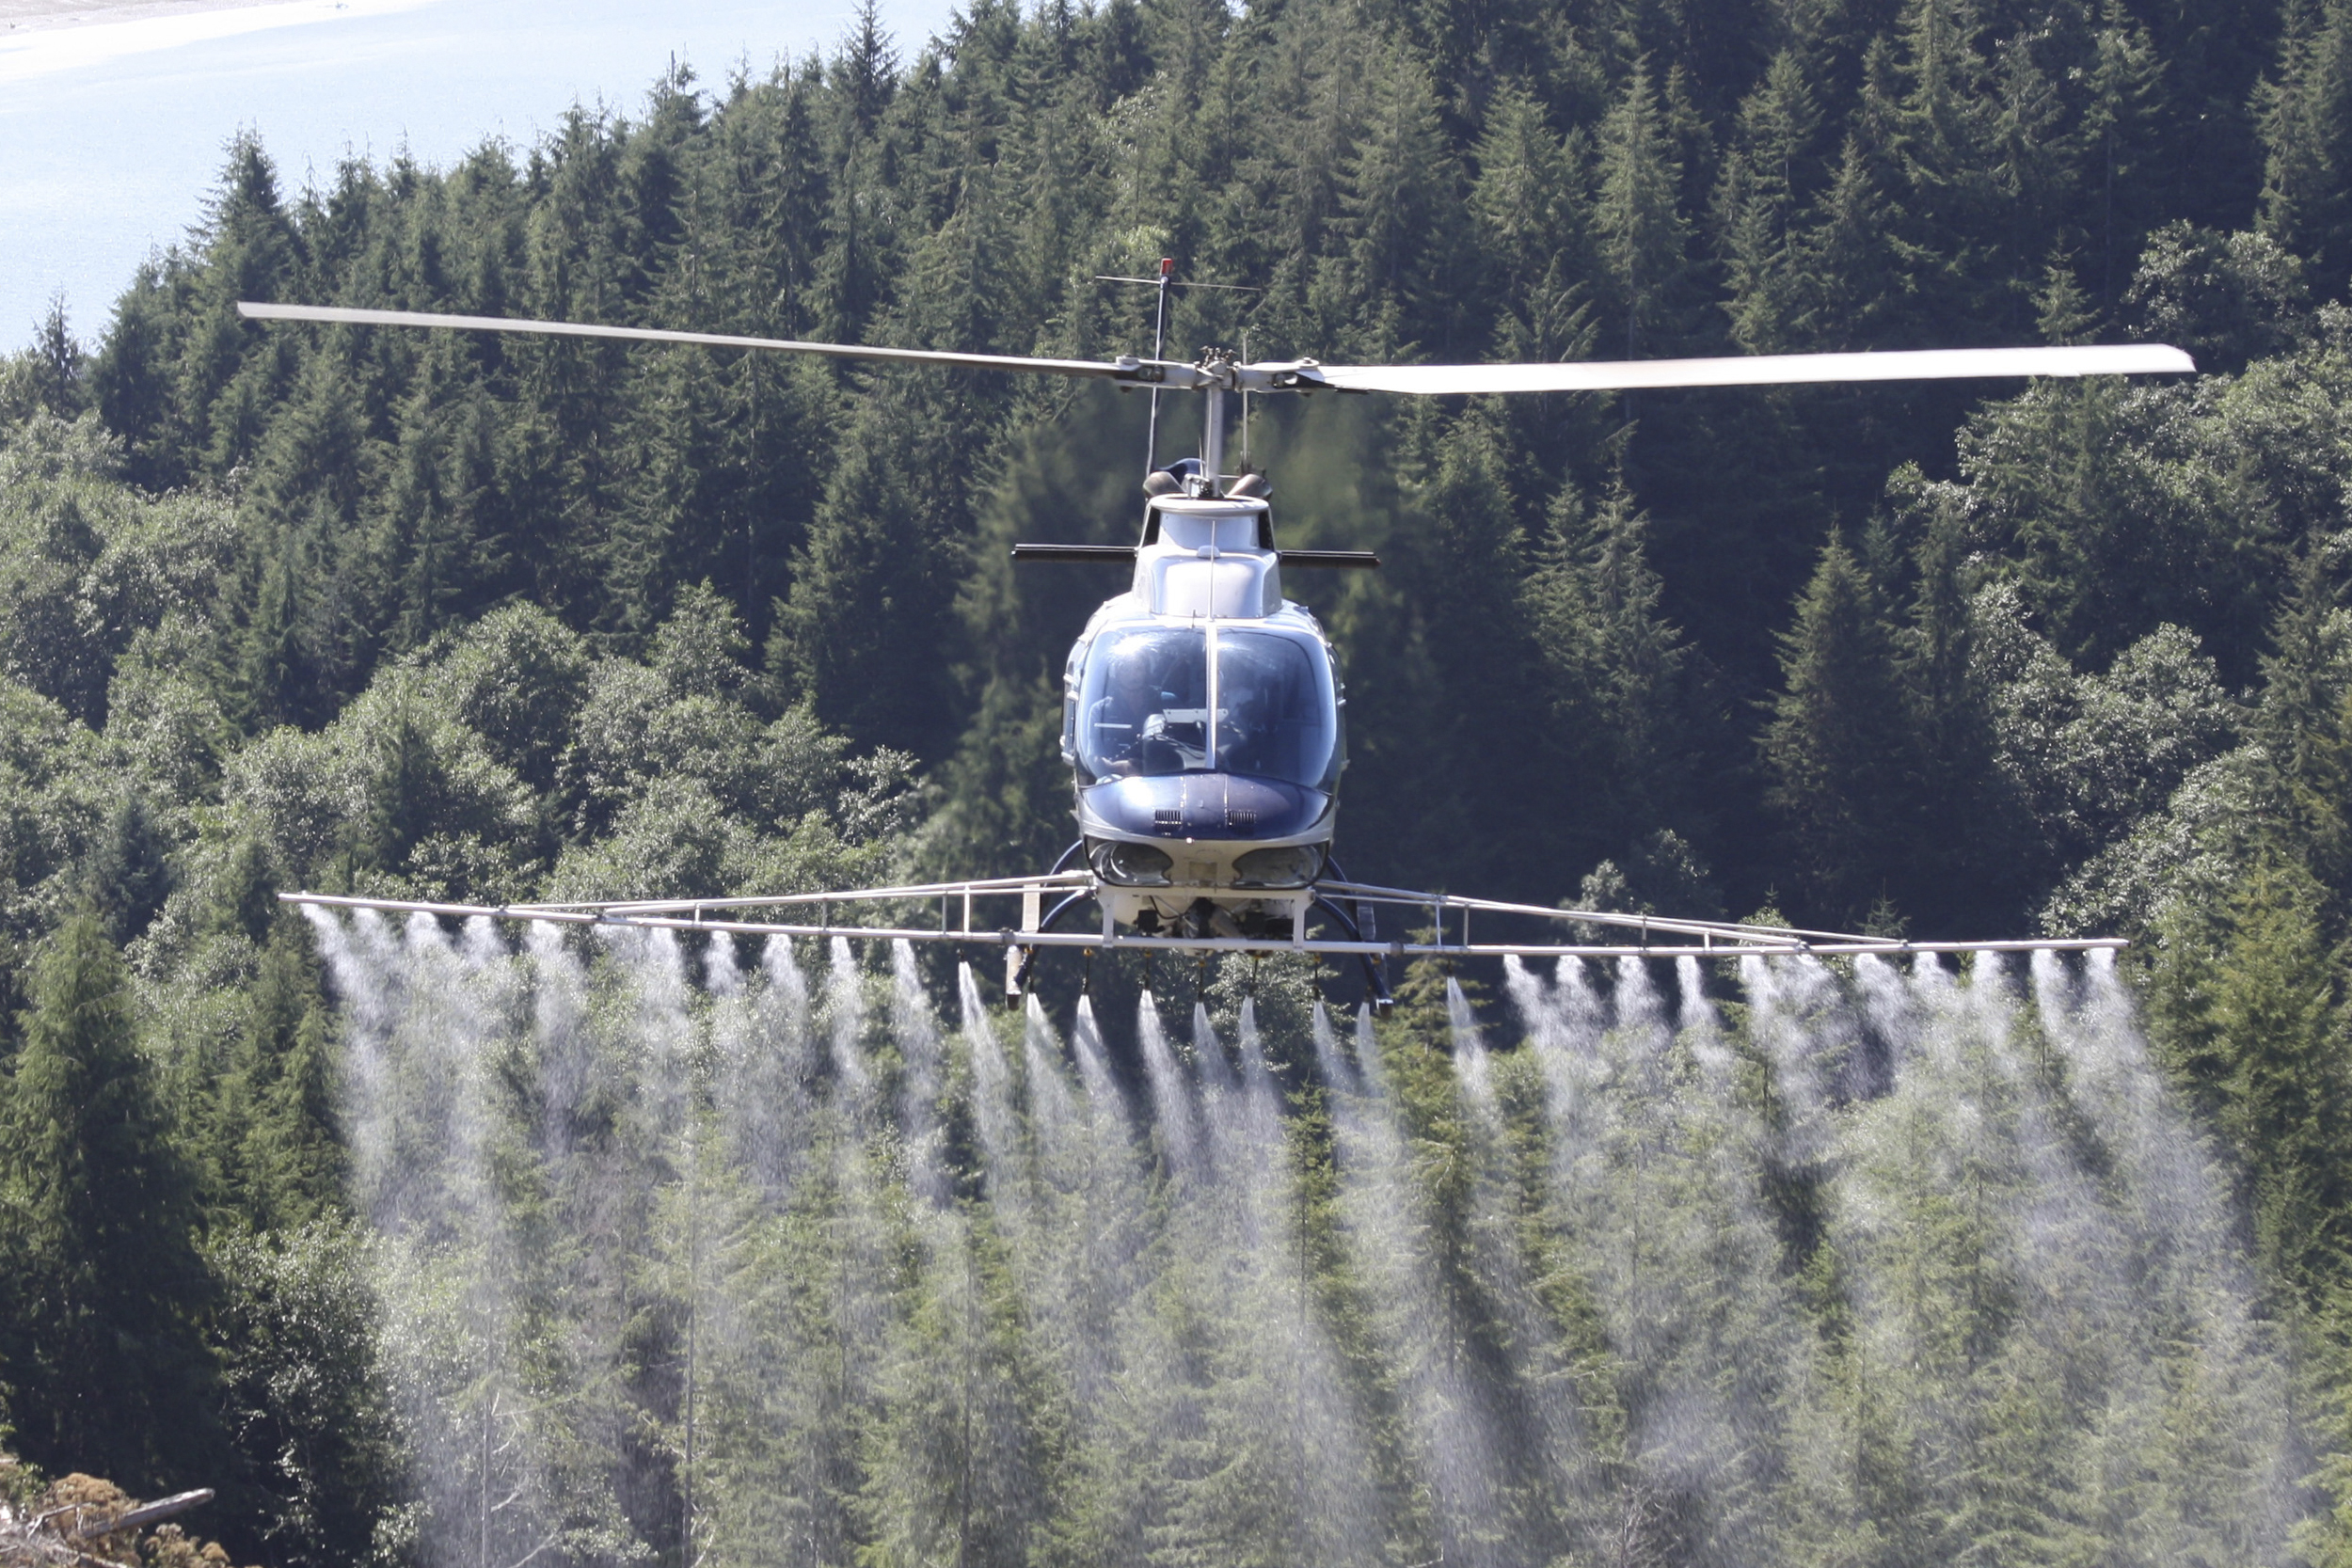 Forestry application by helicopter